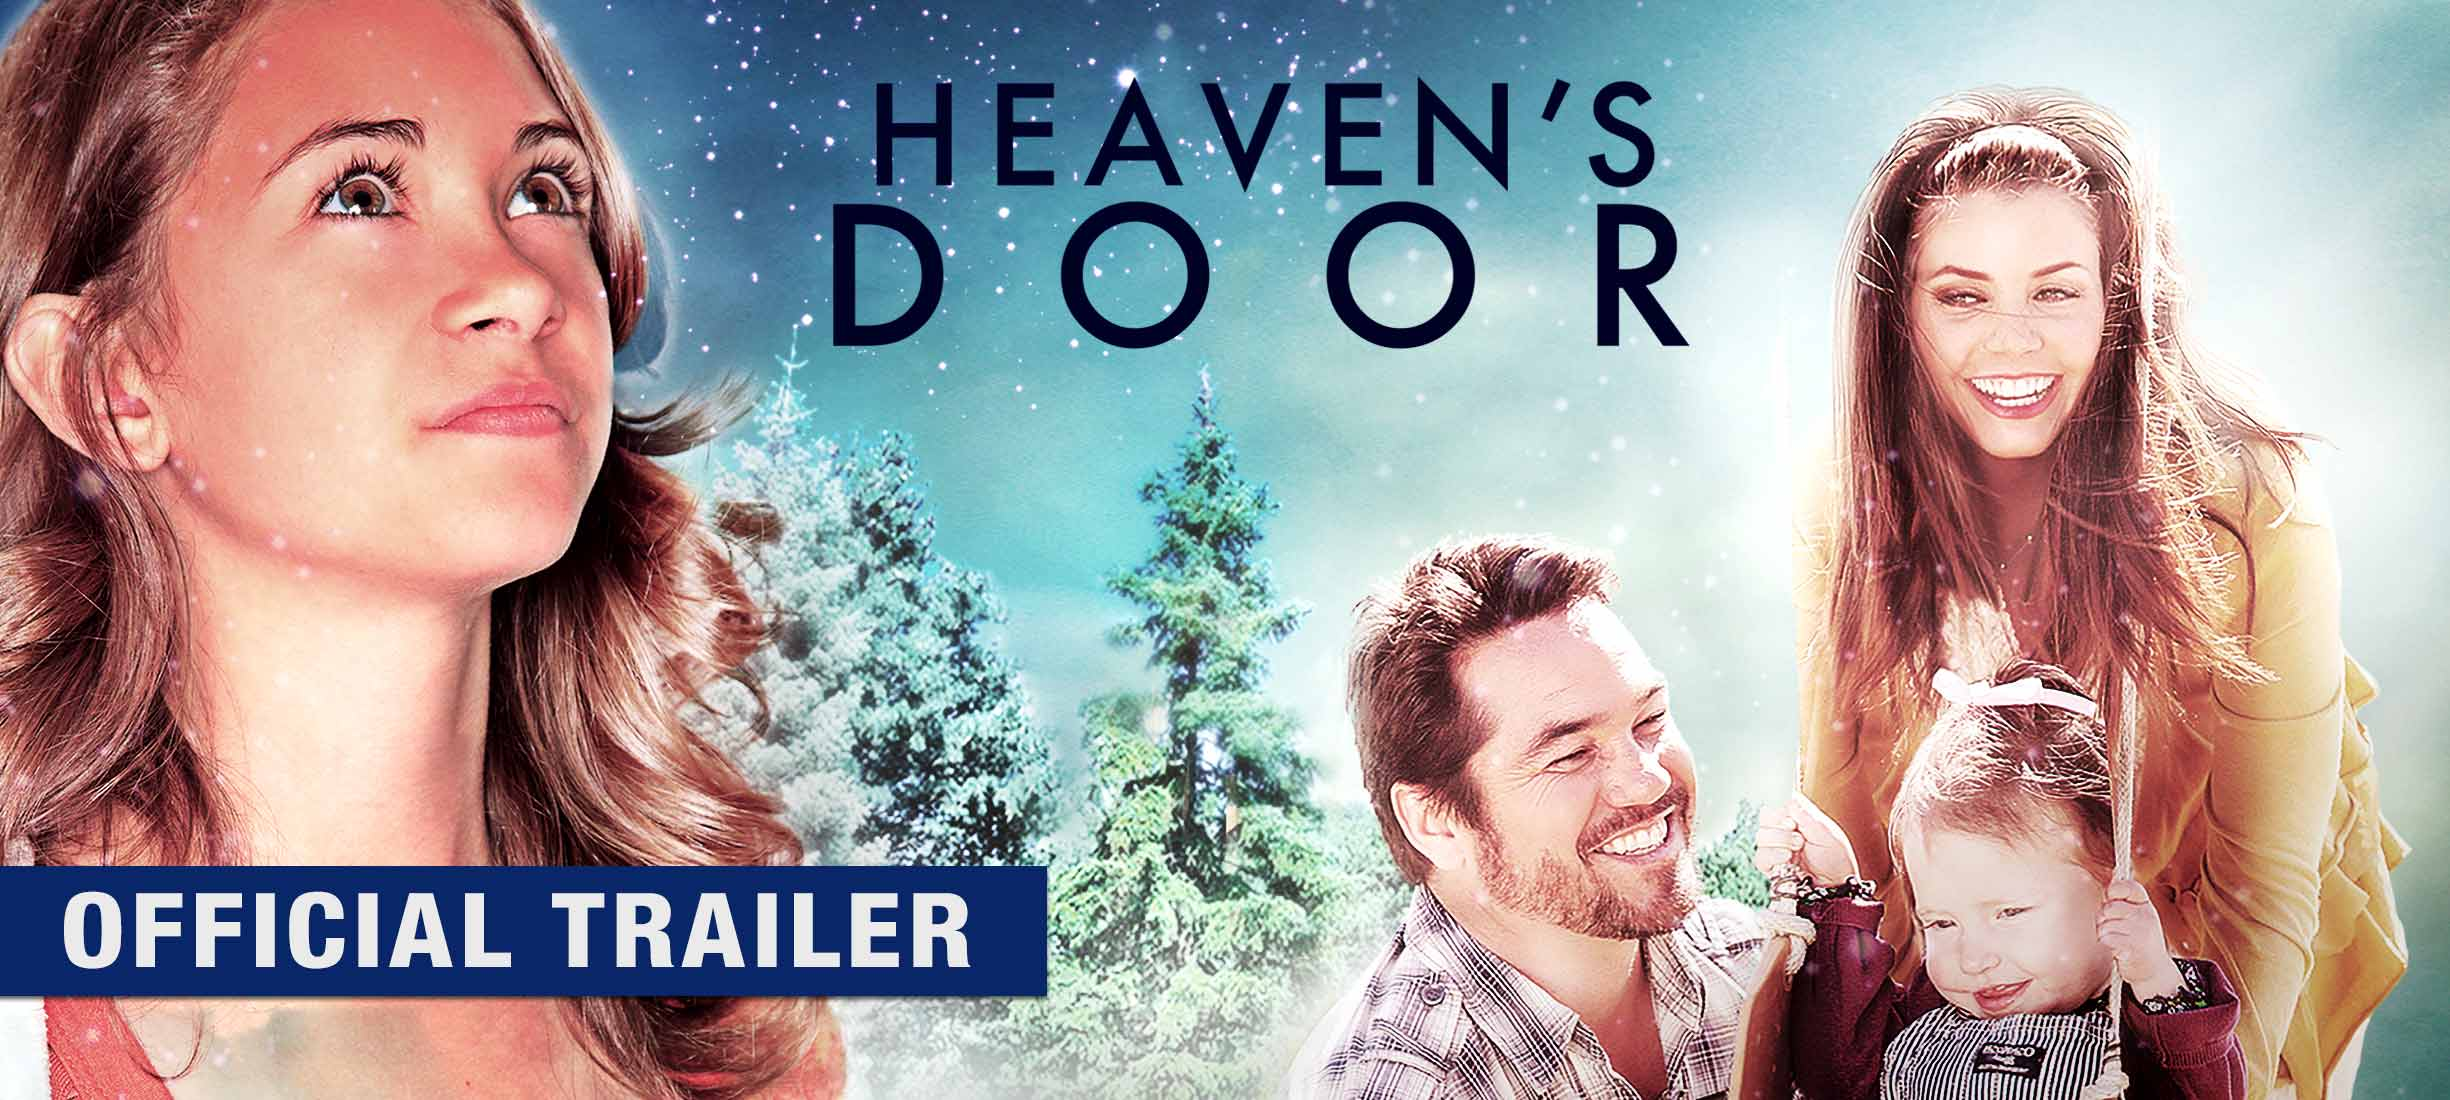 Heaven's Door: Trailer